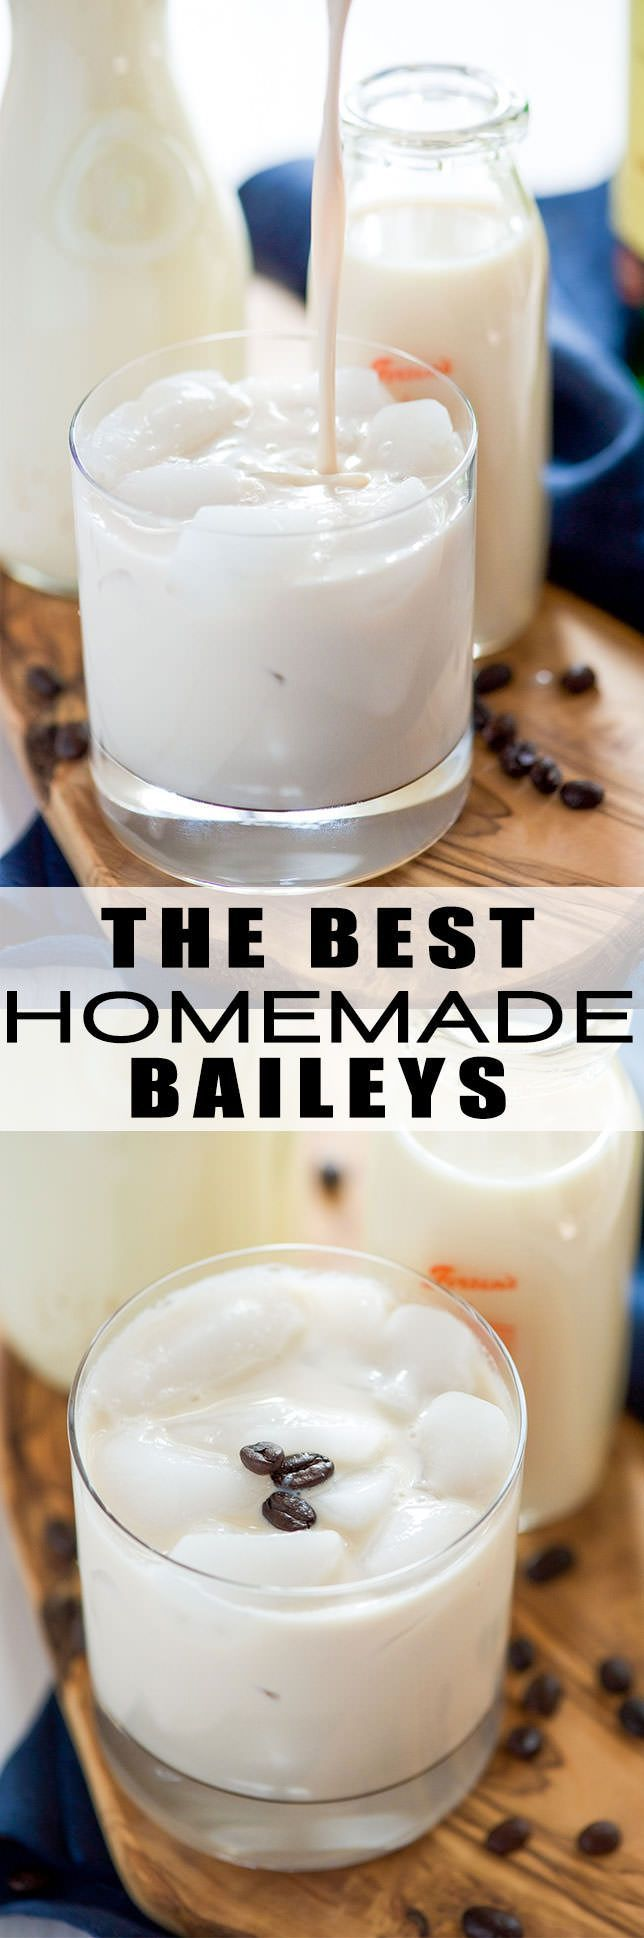 The Best Homemade Baileys Irish Cream